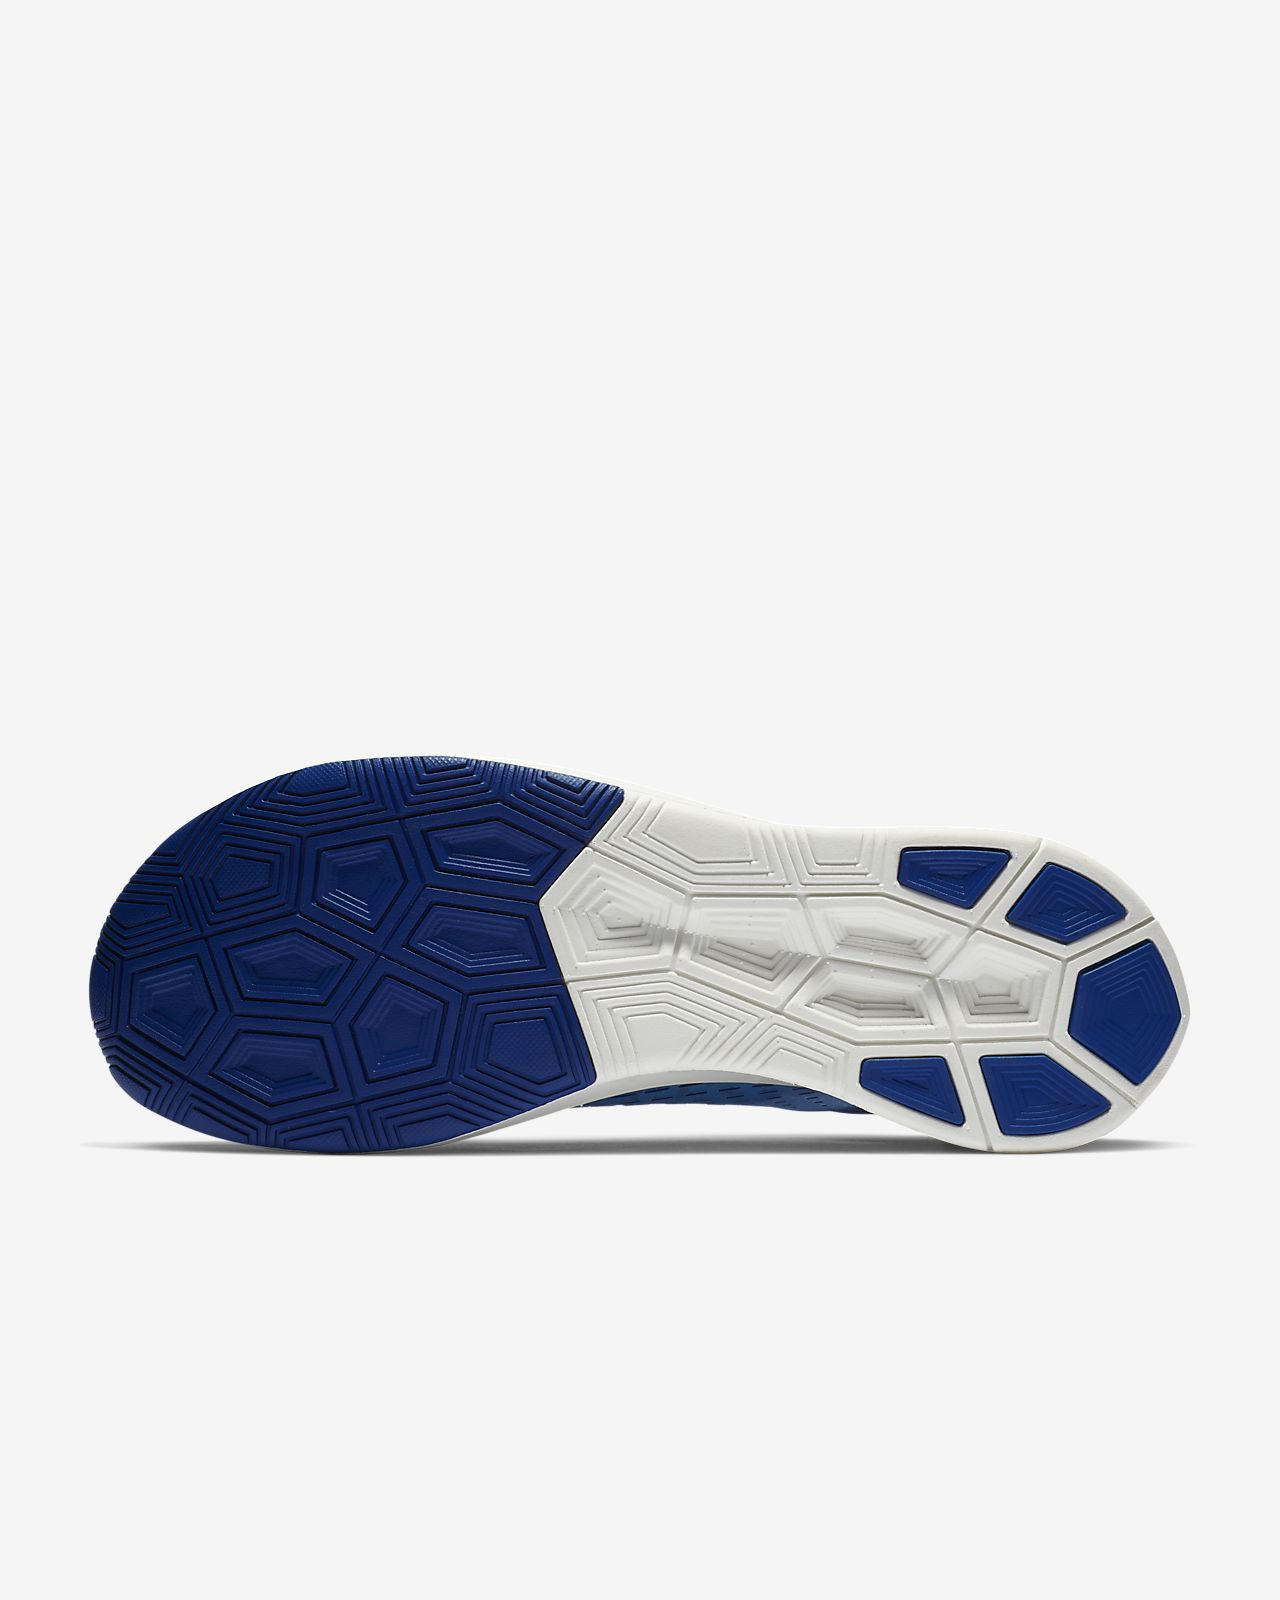 Chaussure De Femme Sp Pour Zoom Running Nike Fly Fast ON8wPkn0X